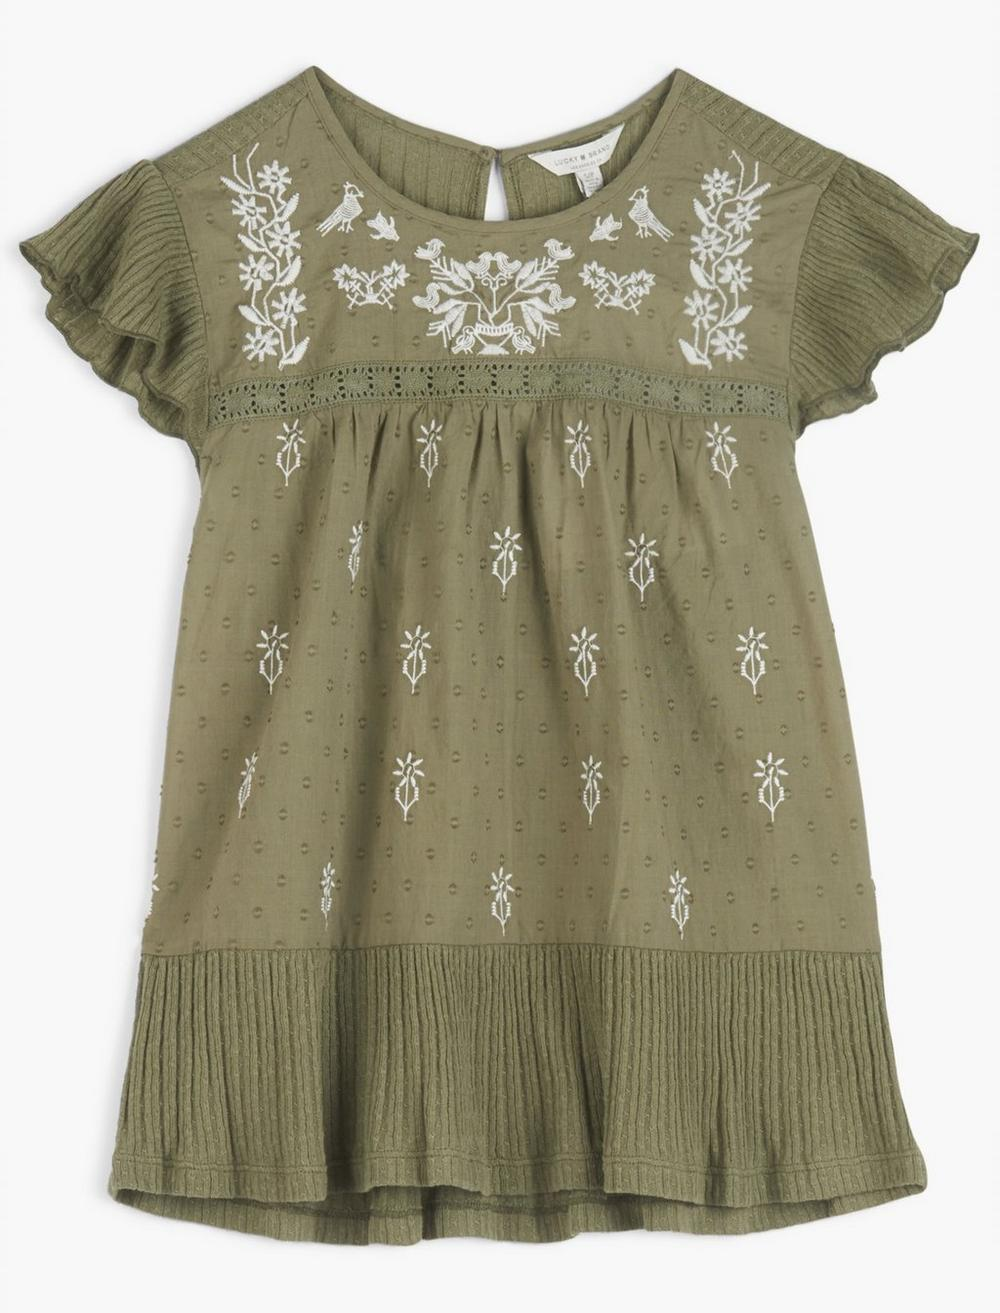 EMBROIDERED RUFFLE SLEEVE TOP, image 1